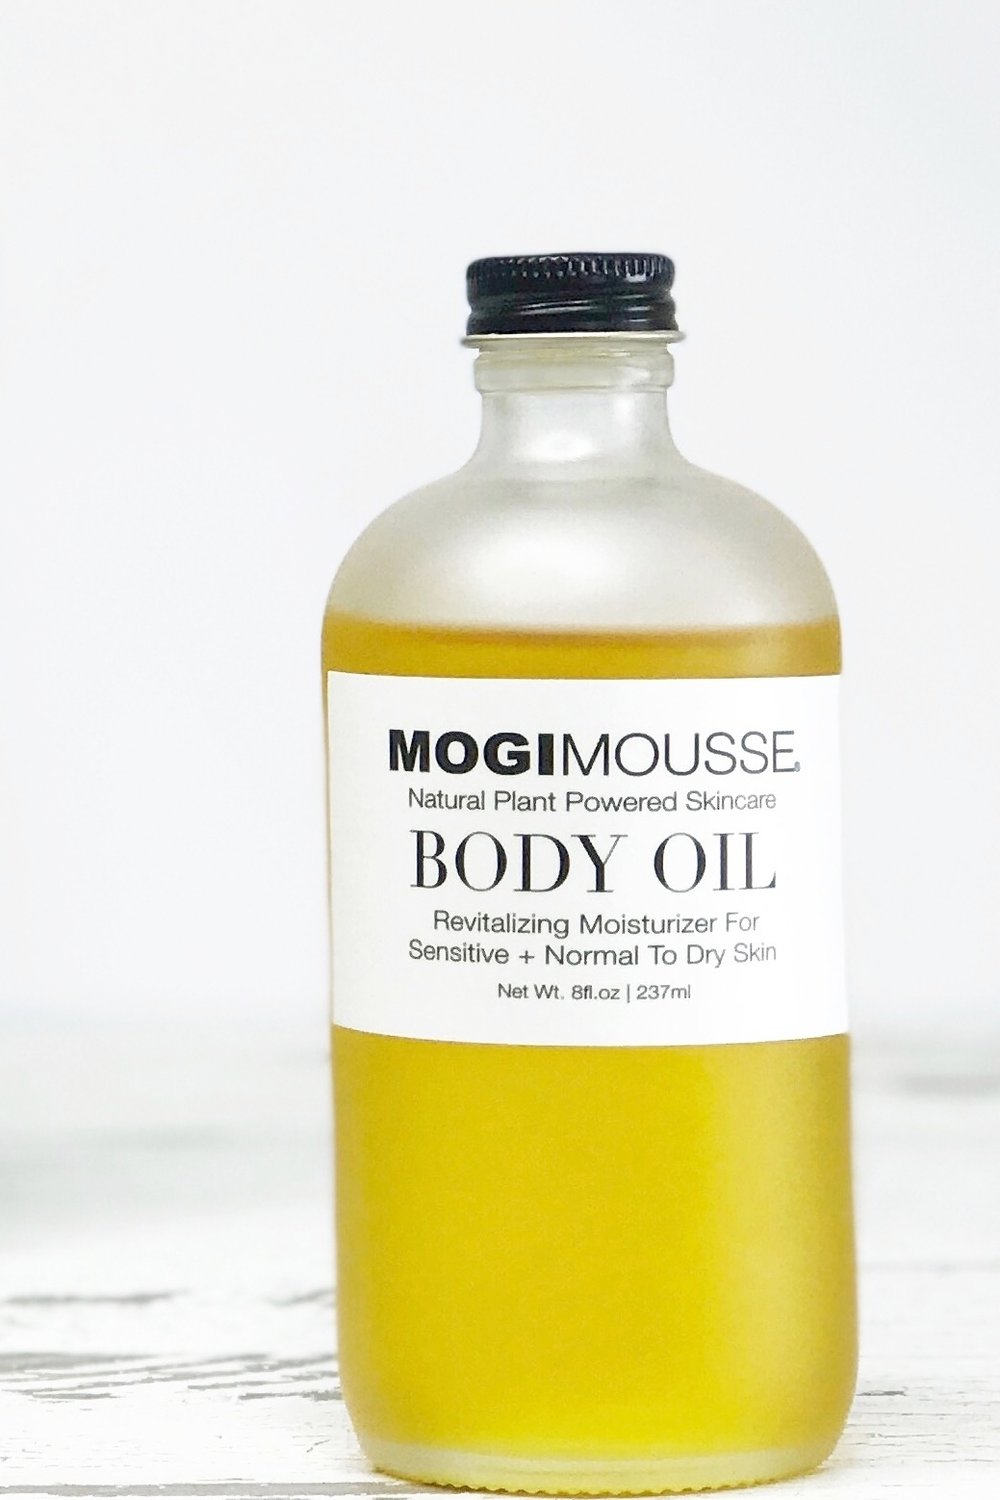 MOGI MOUSSE Body Oil